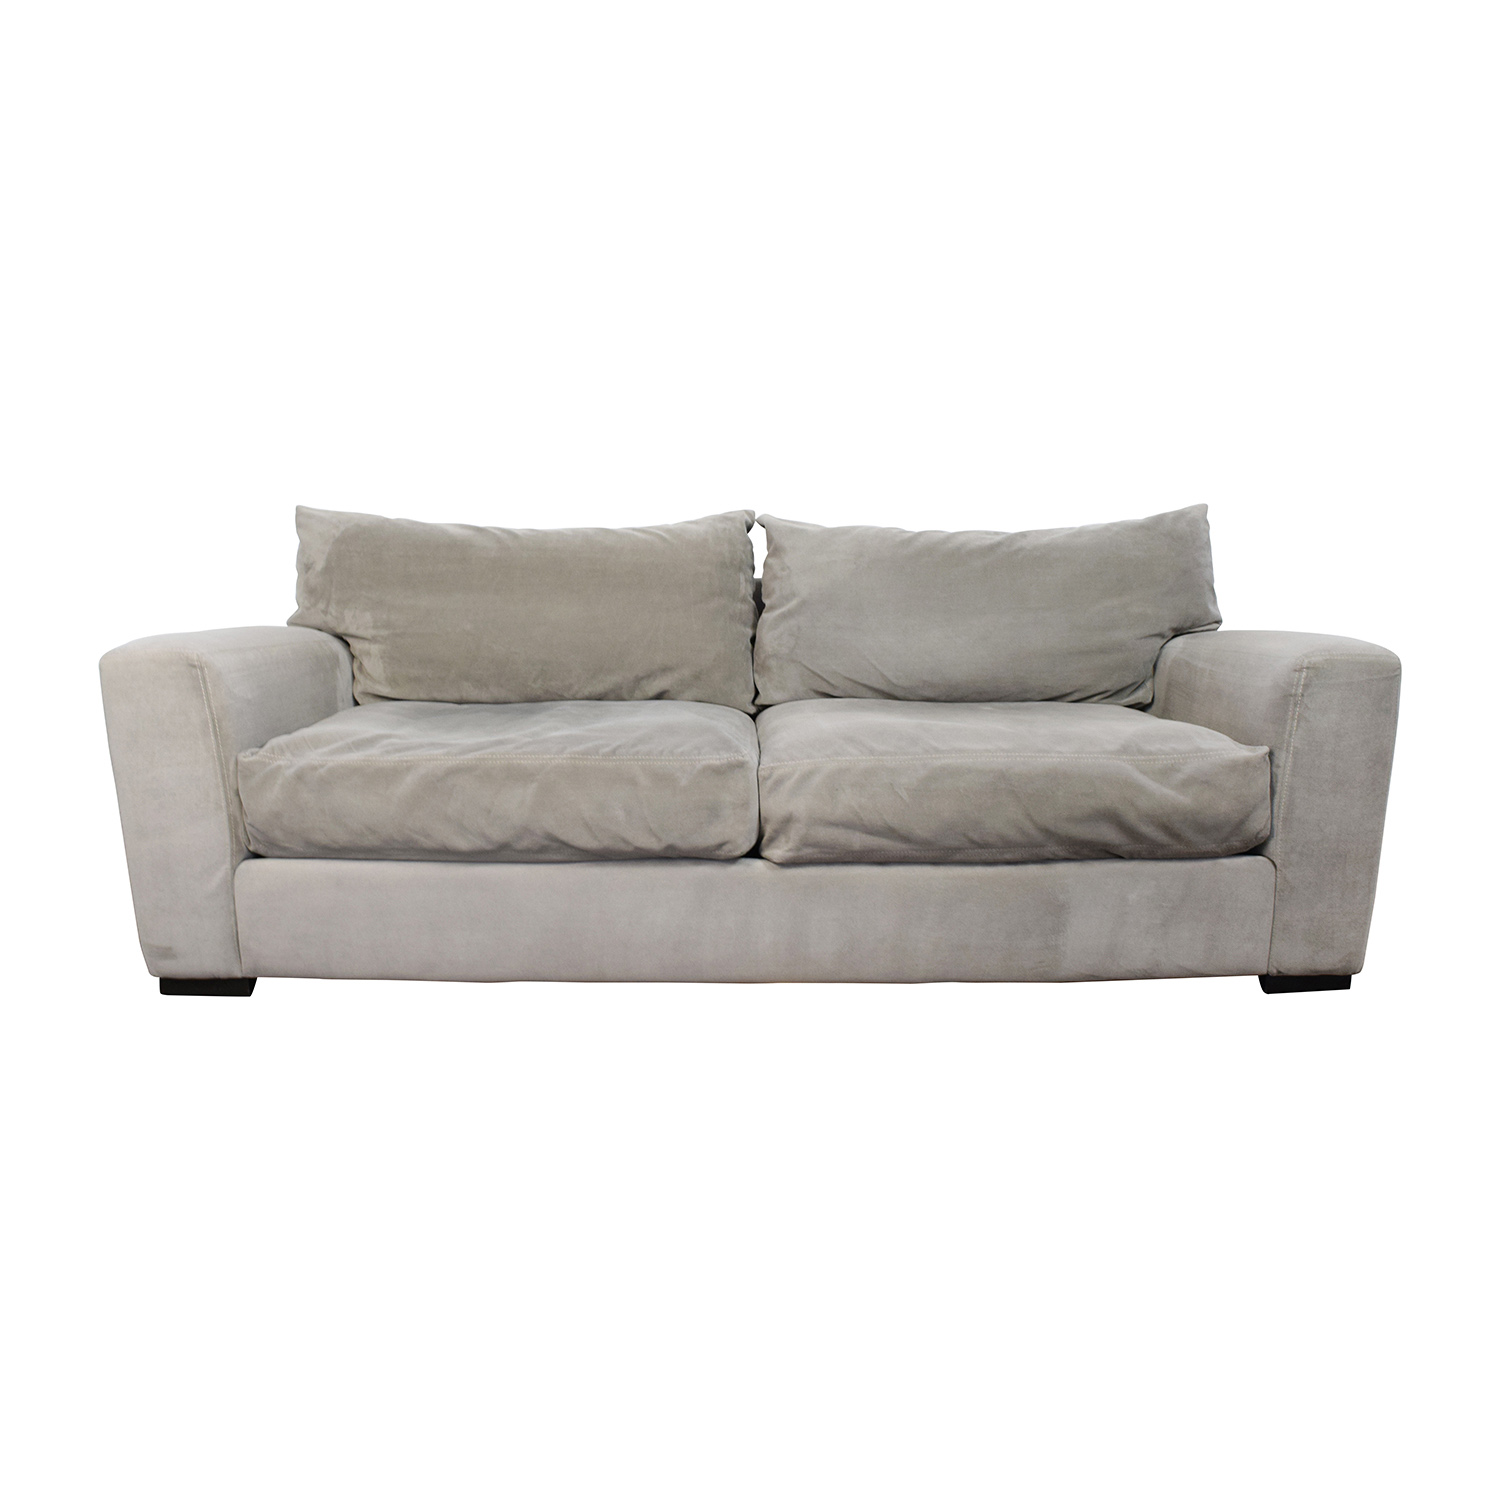 Raymour And Flanigan Carlin Grey Microfiber Sofa Second Hand